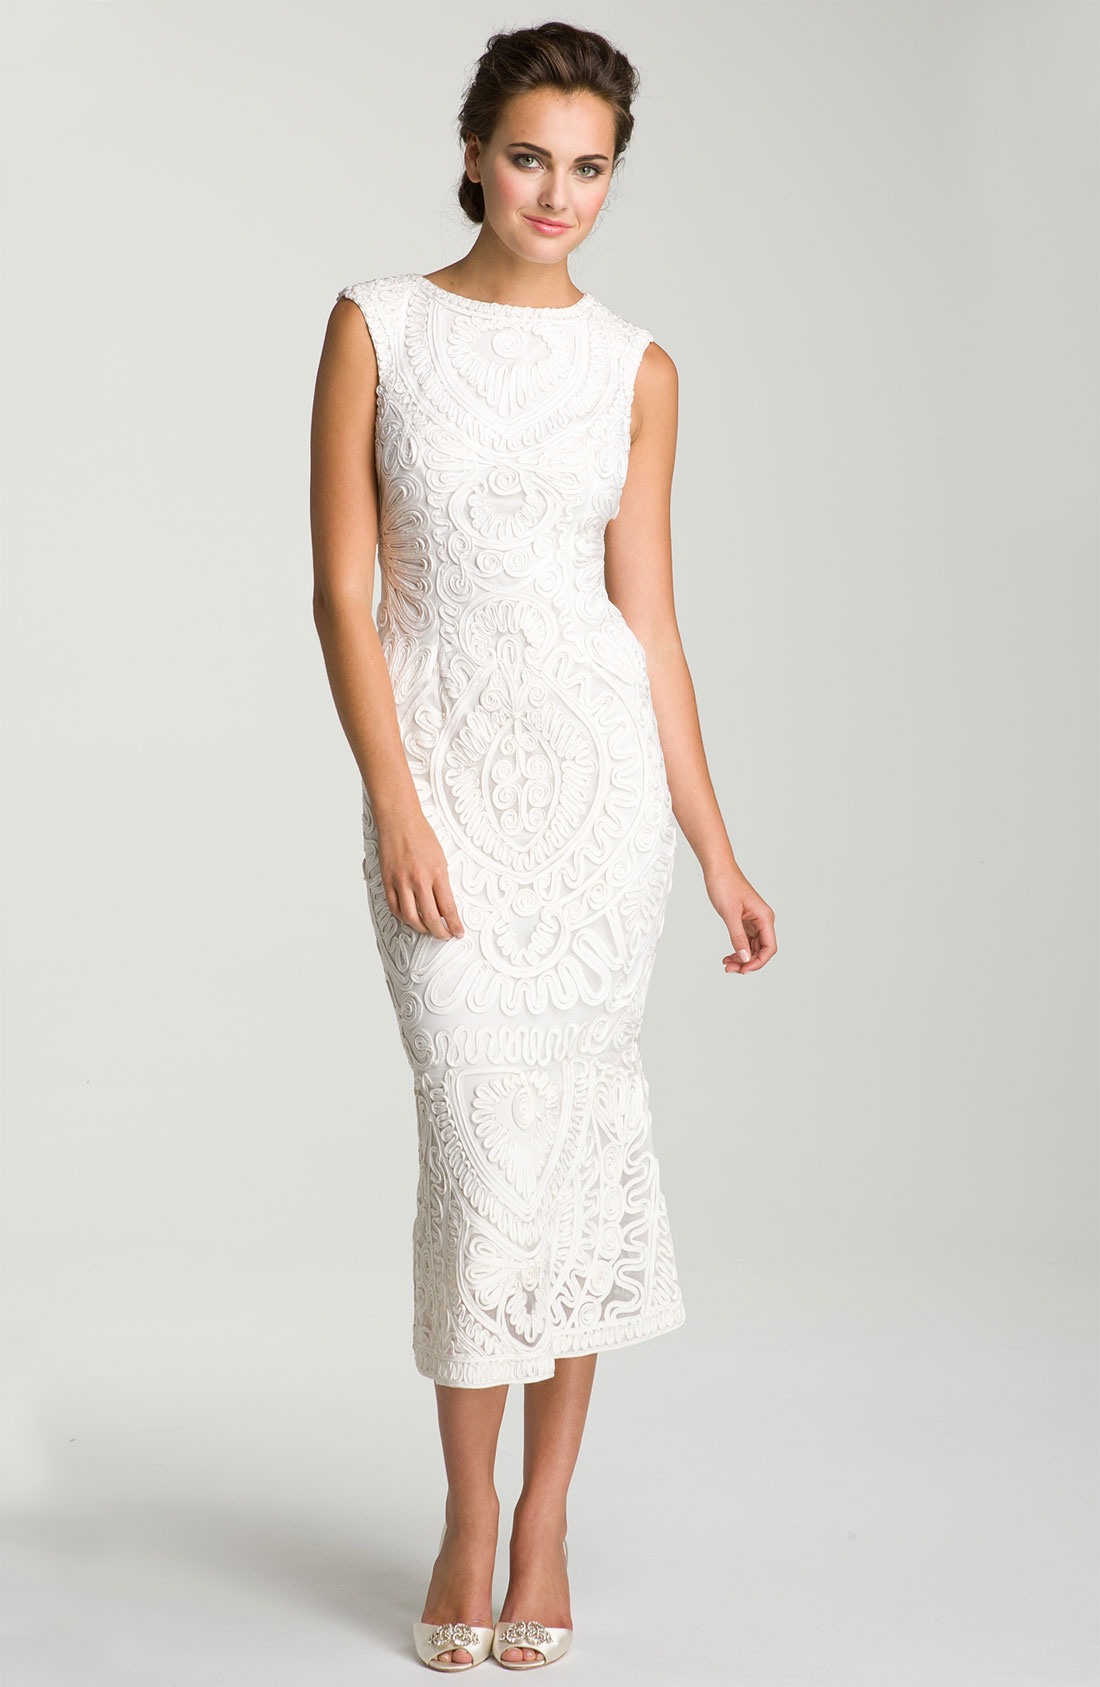 Where to buy js collections dresses